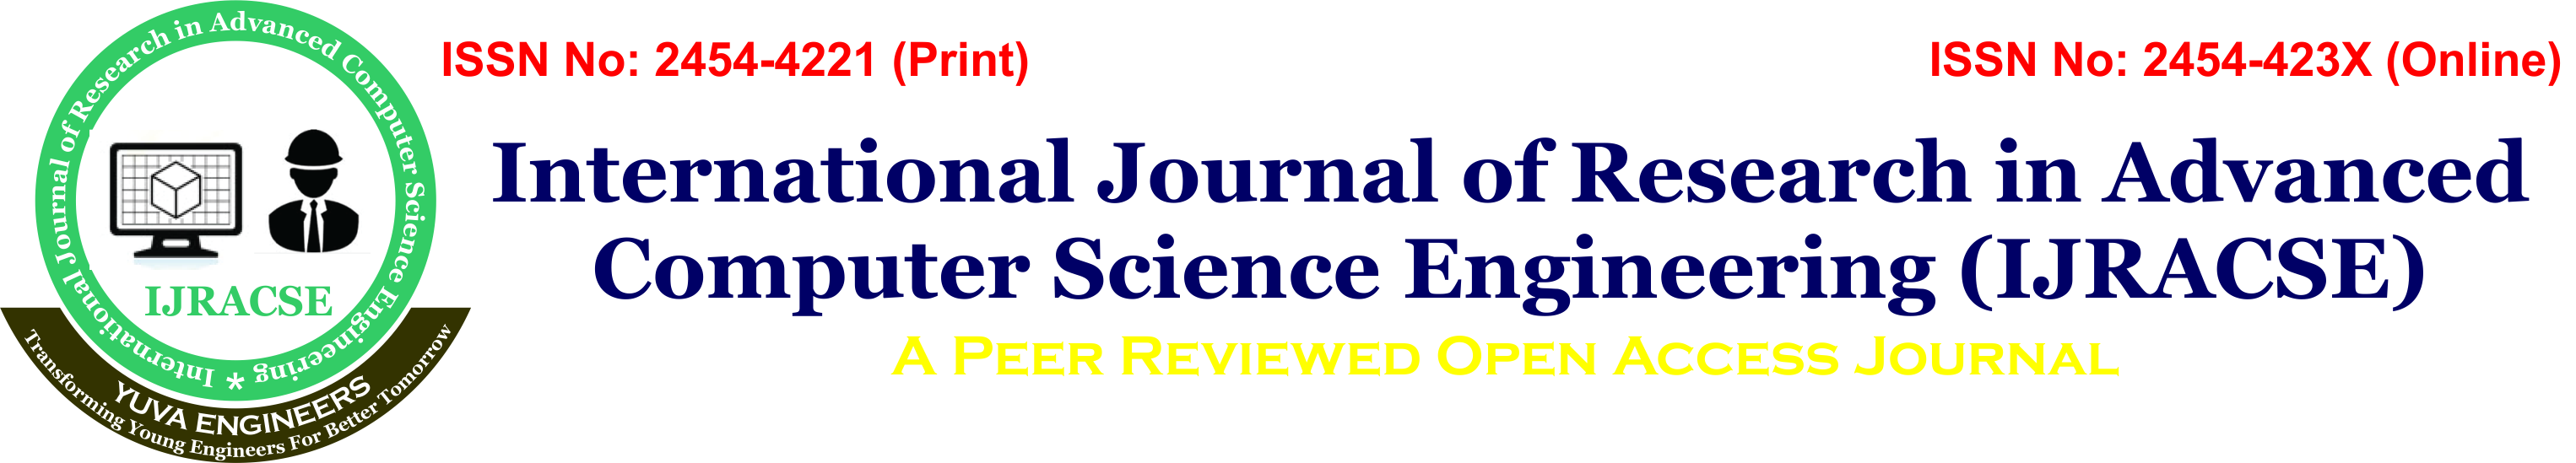 International Journal of Research in Advanced Computer Science Engineering